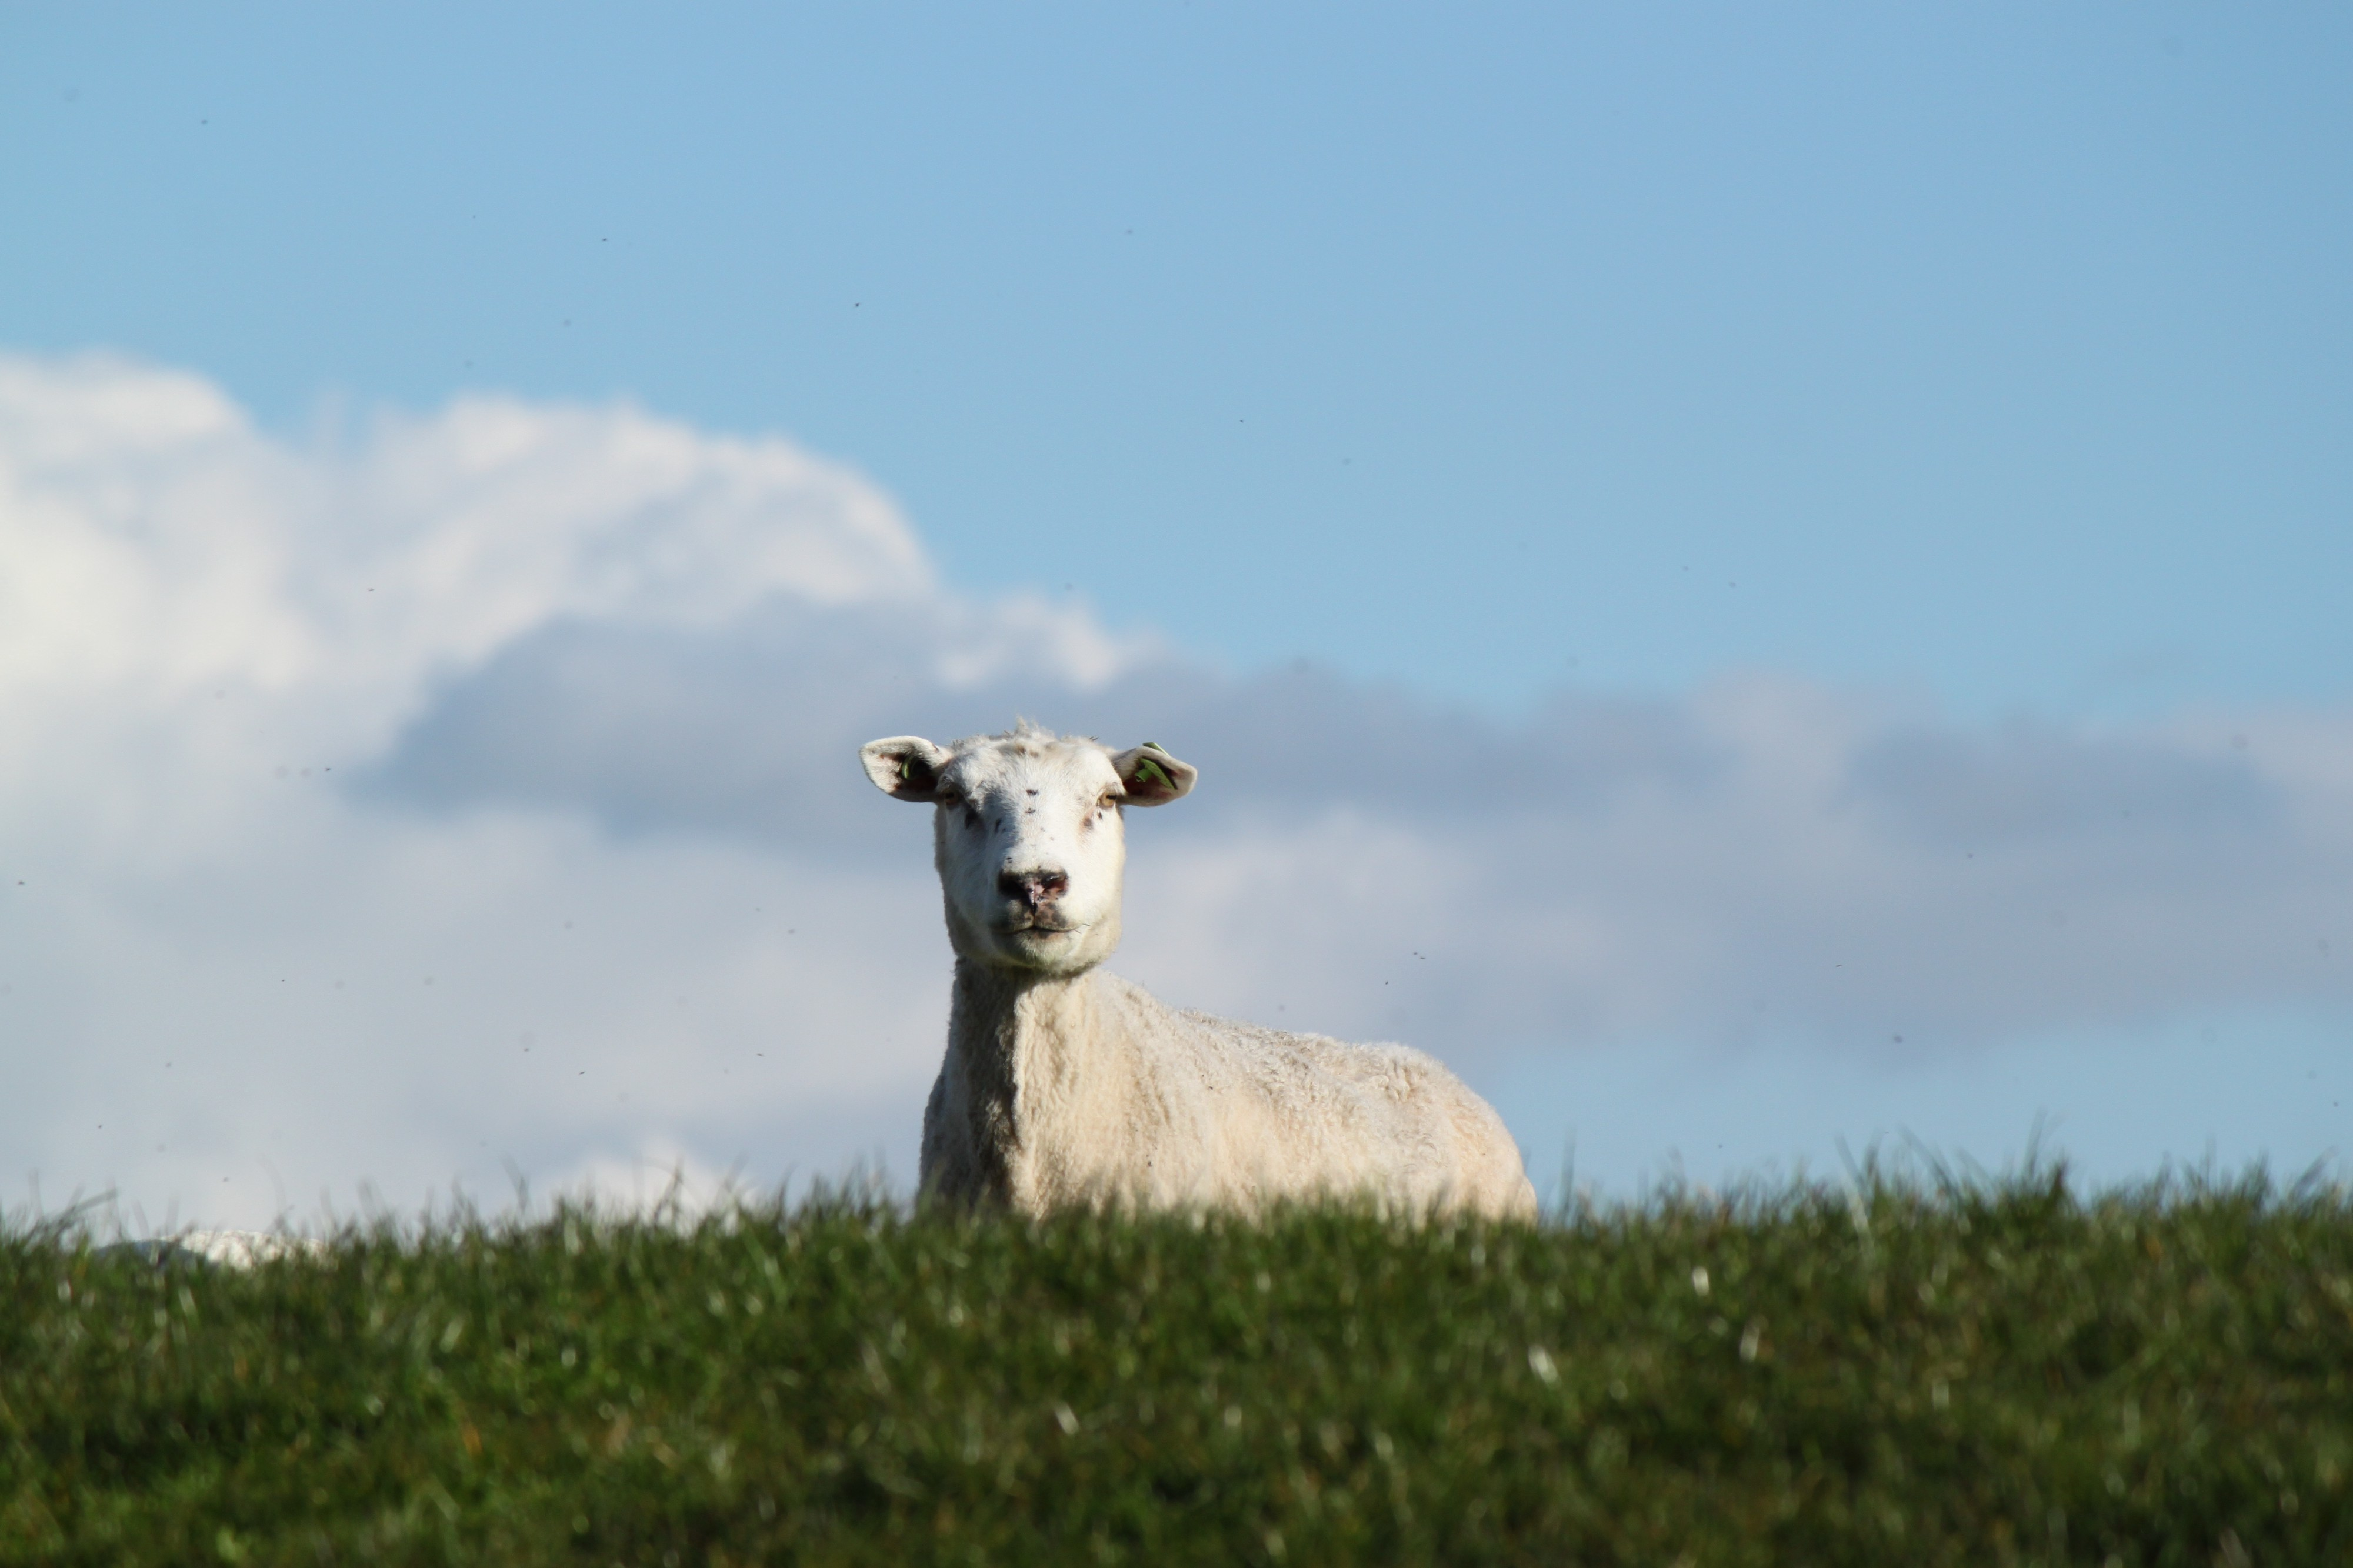 A goat peers over a patch of grass.